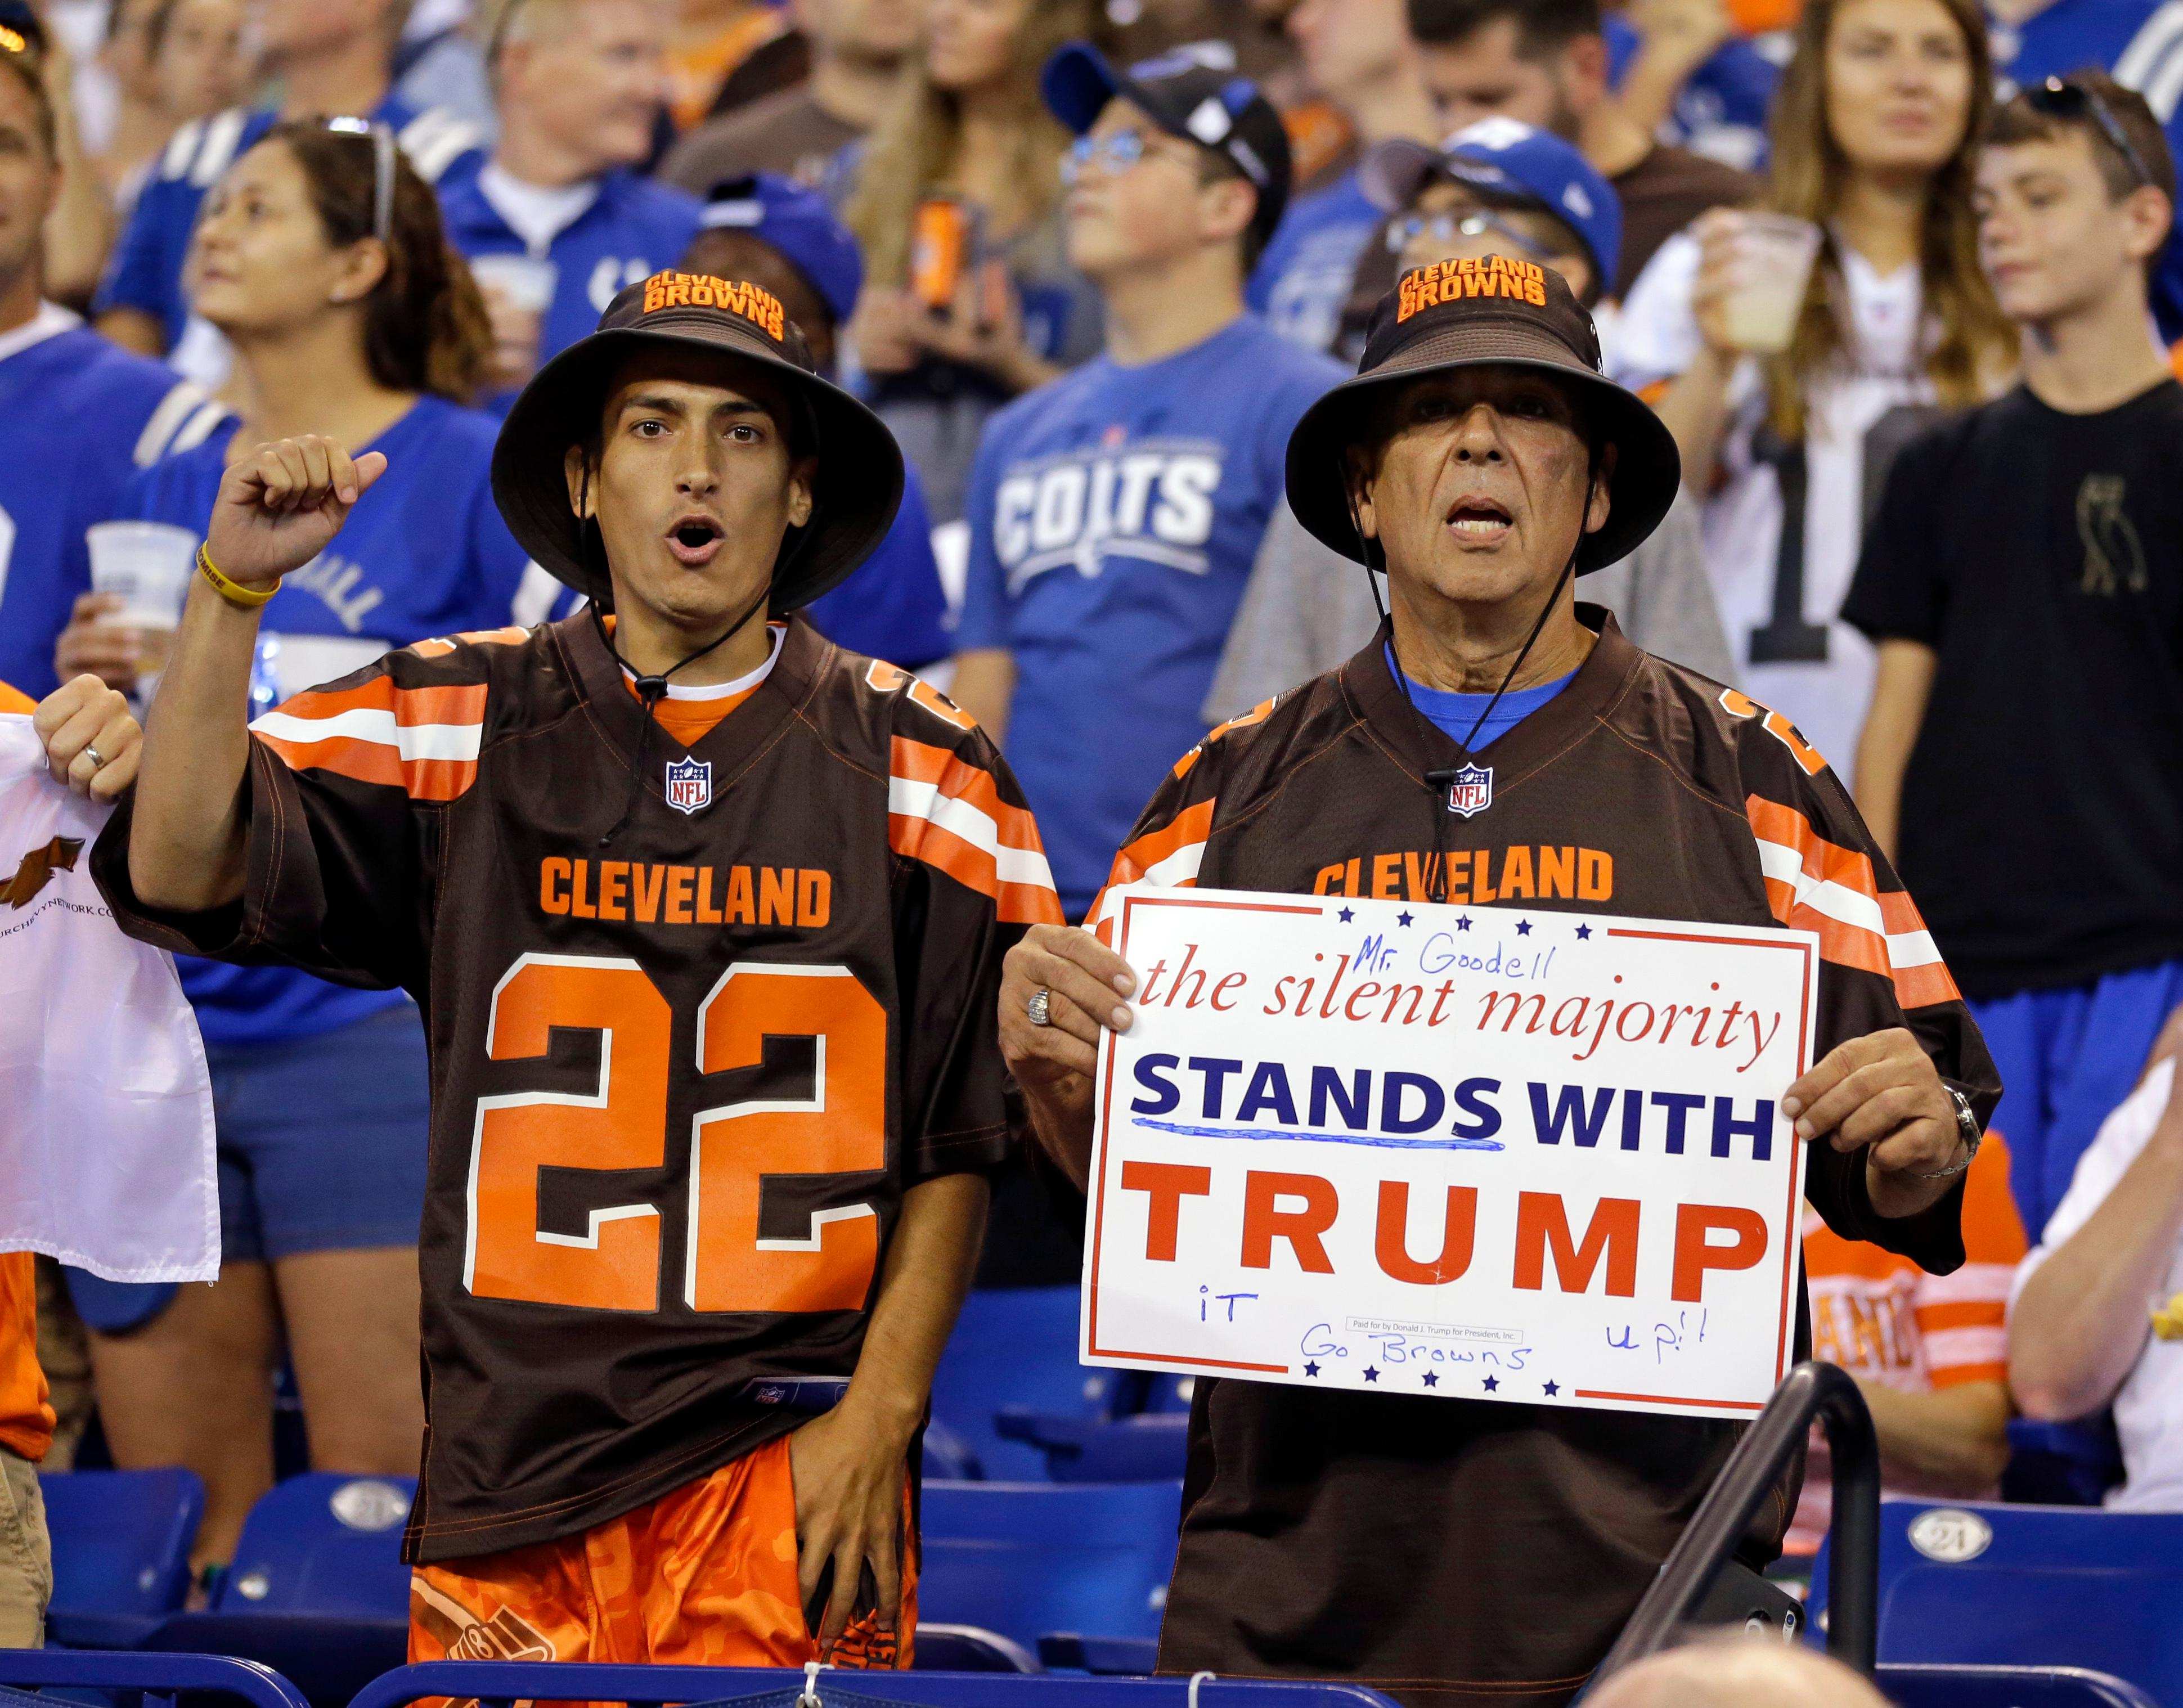 Cleveland Browns fans hold a sign following the national anthem before an NFL football game between the Indianapolis Colts and the Cleveland Browns in Indianapolis, Sunday, Sept. 24, 2017. (AP Photo/Michael Conroy)